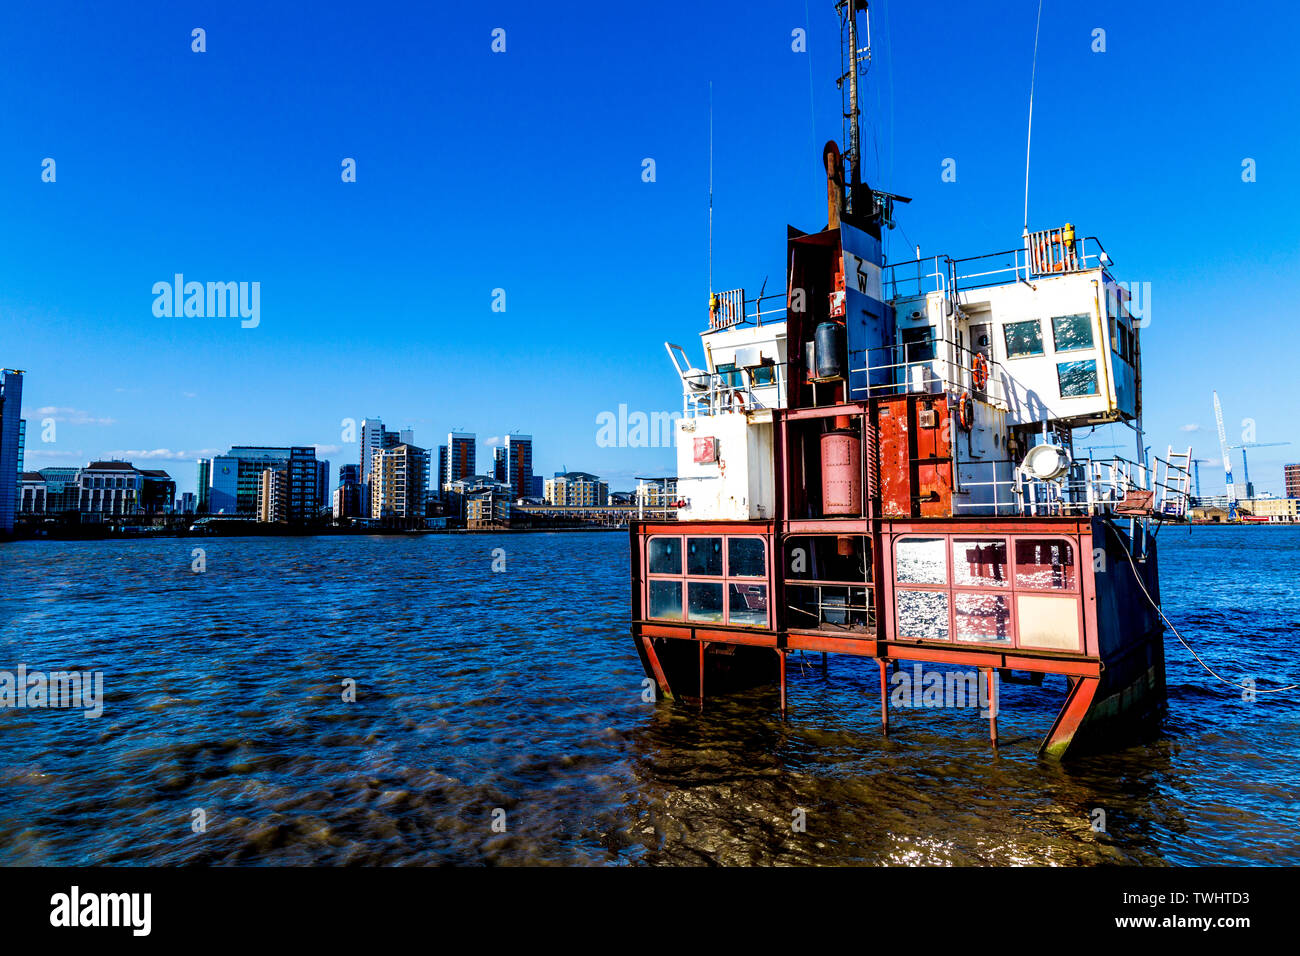 'A Slice of Reality' (2000) by Richard Wilson, a sliced section of a Sand Dredger, part of The Line Art Walk, Greenwich, London, UK - Stock Image